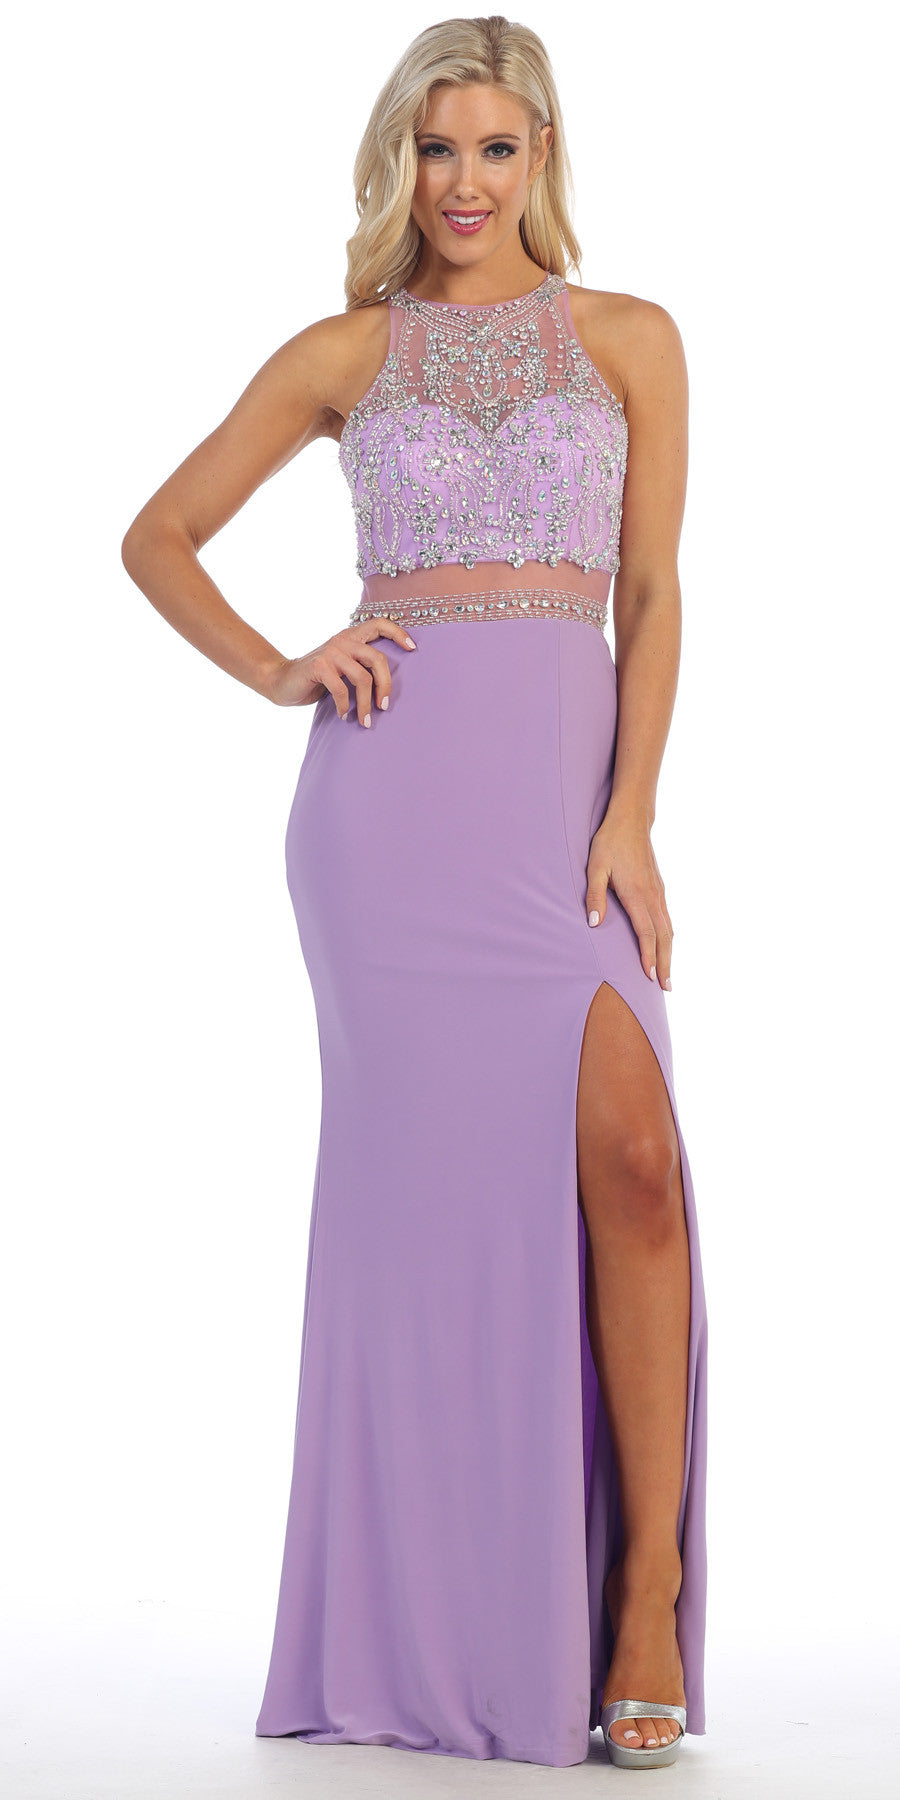 Sexy Slit Long Prom Gown Lilac Sheer Waist Rhinestone Top